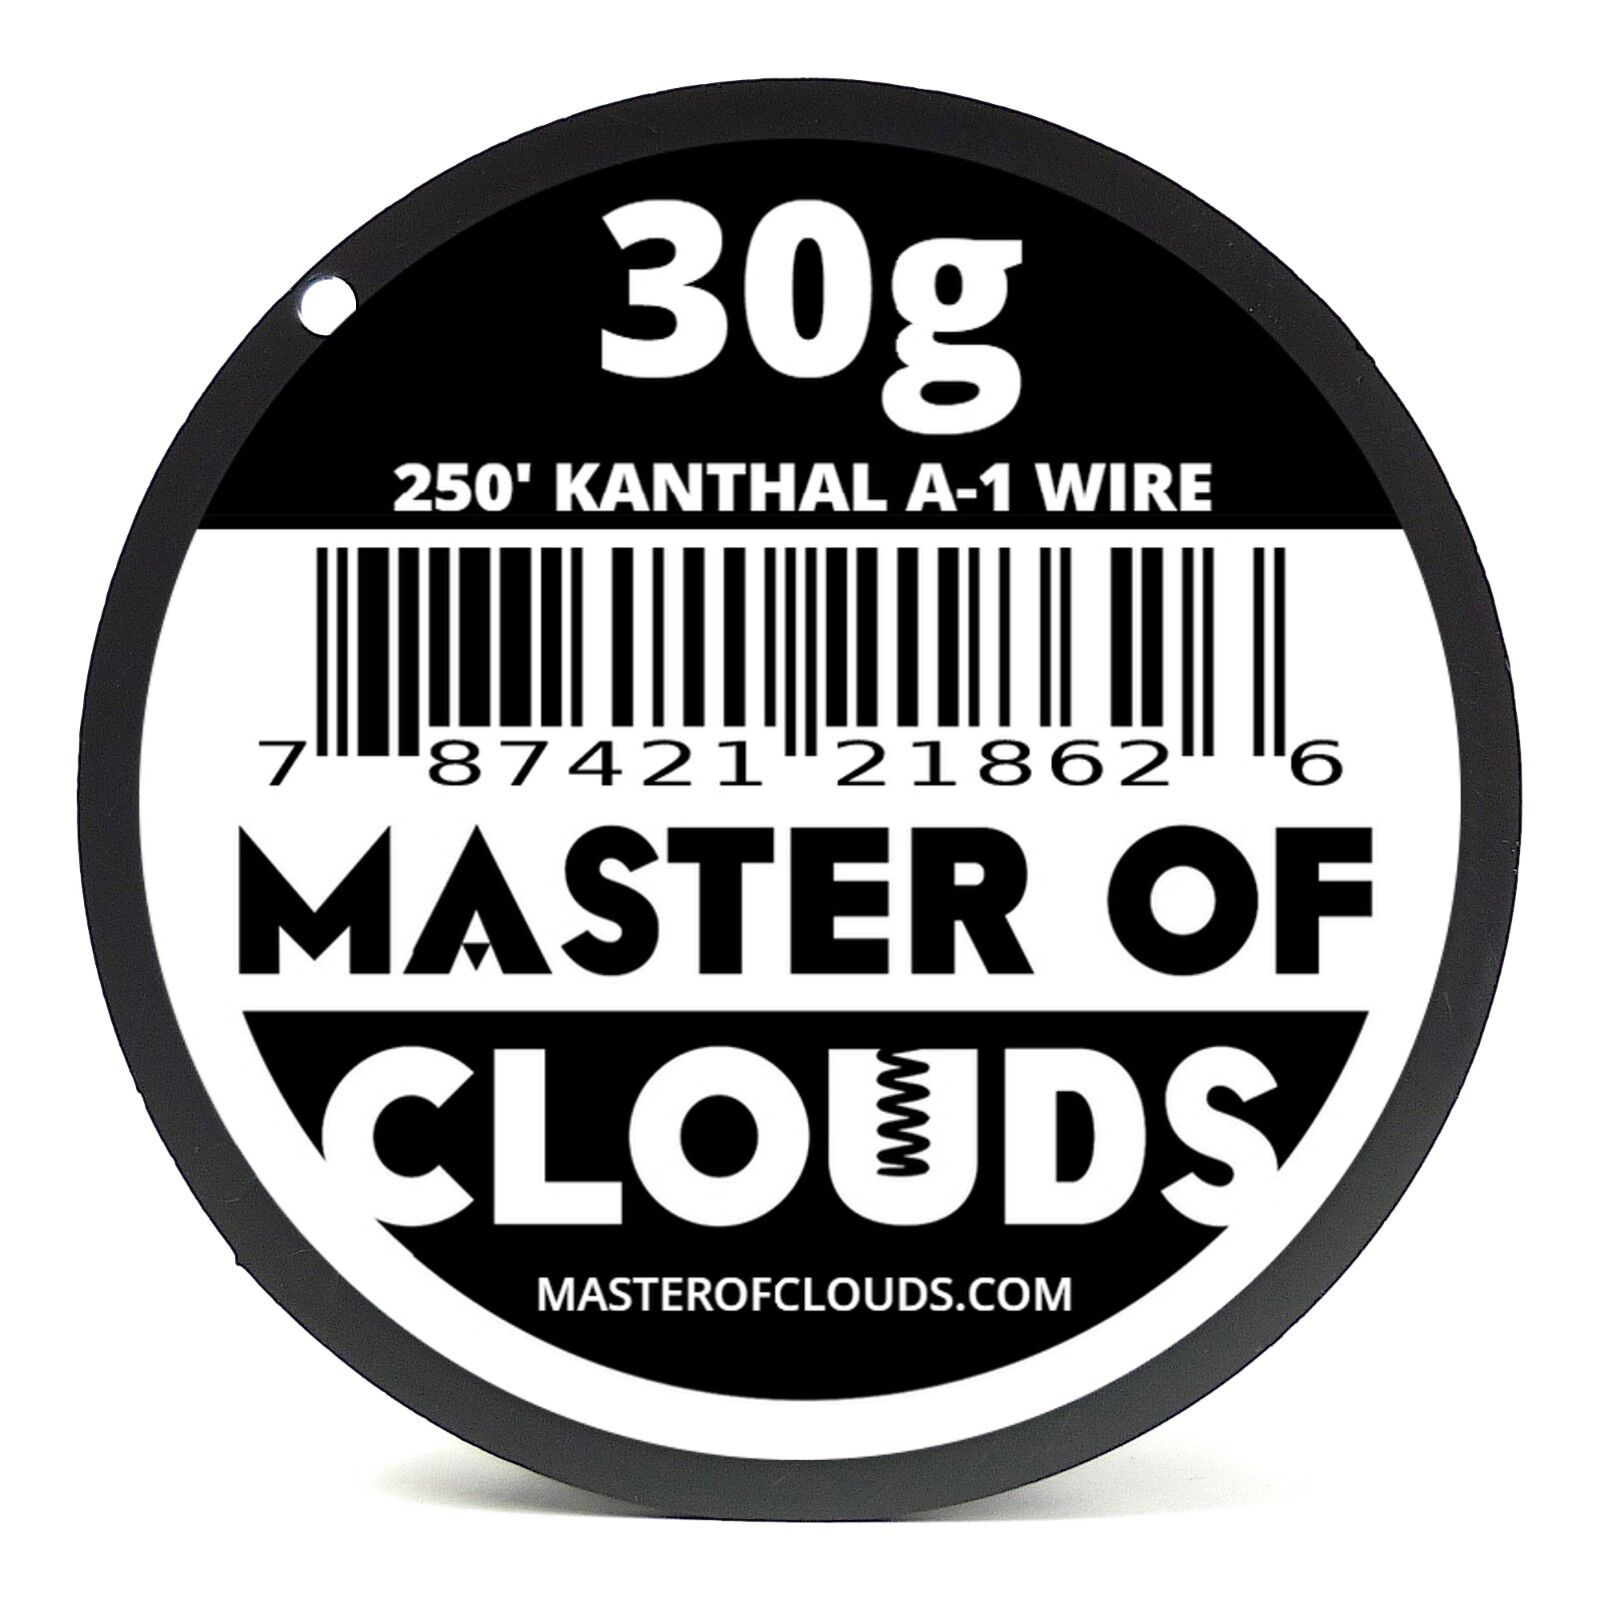 Master of clouds cecominod015823 100 ft 22 gauge kanthal a1 master of clouds cecominod015823 100 ft 22 gauge kanthal a1 resistance wire ebay keyboard keysfo Choice Image